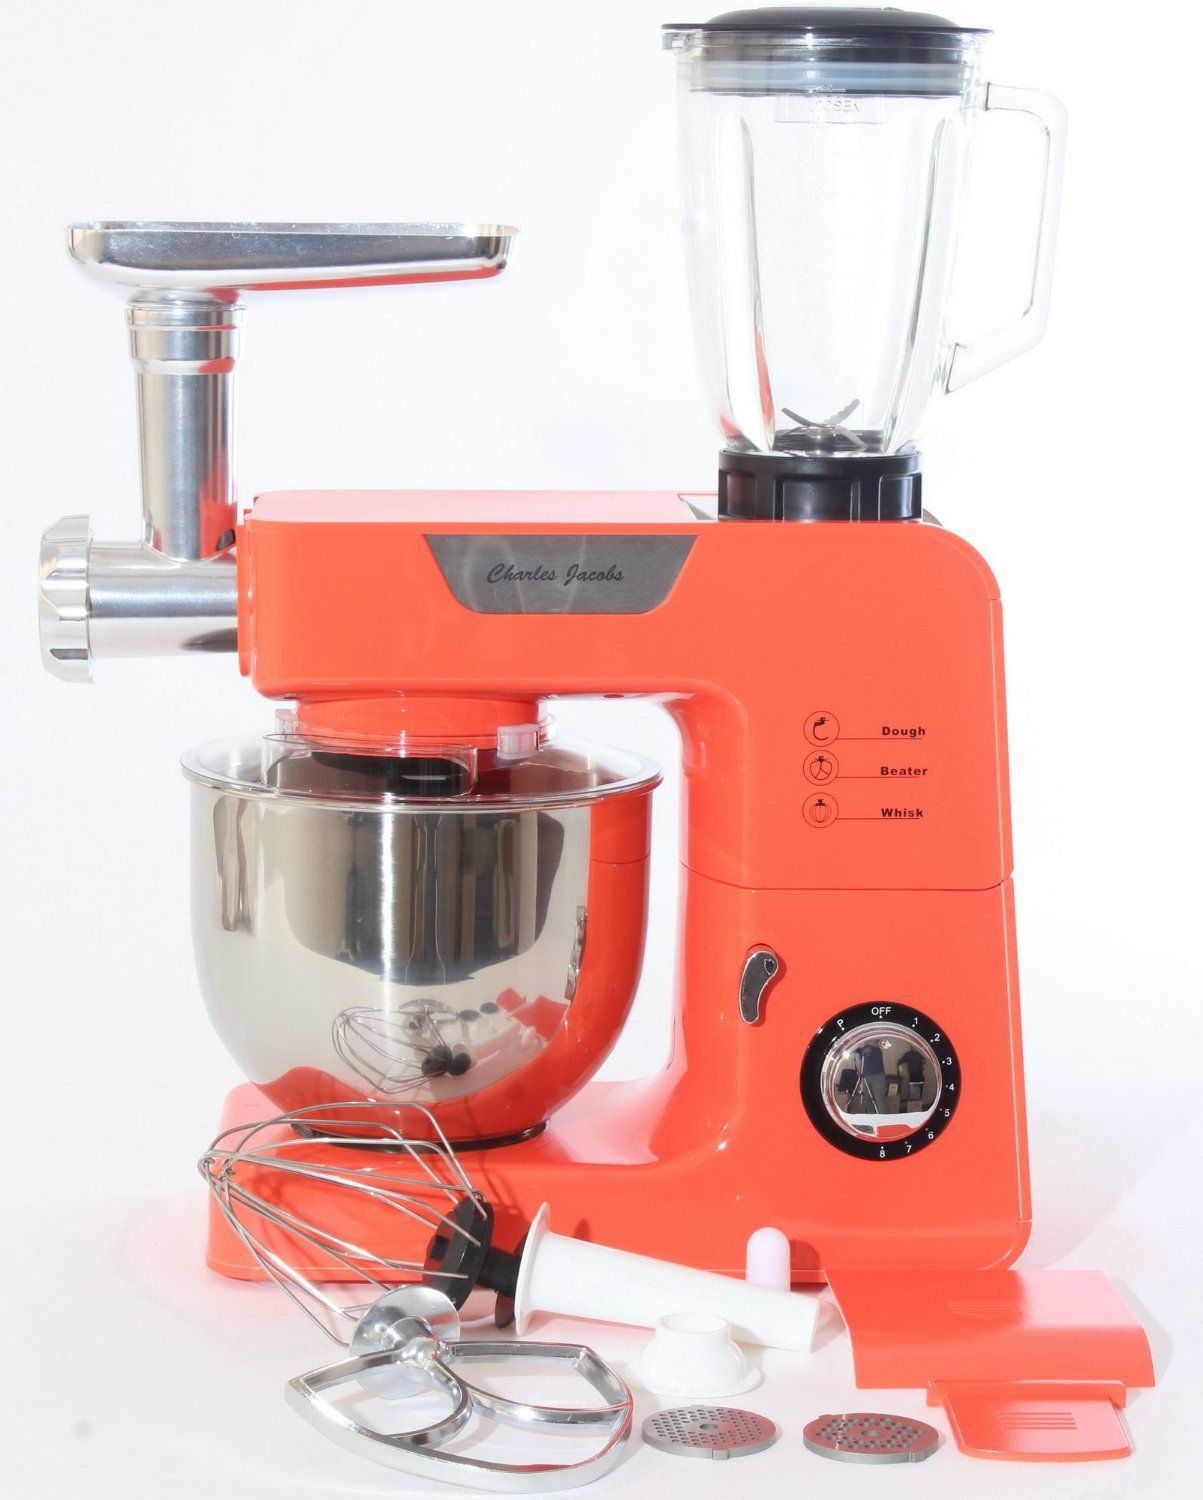 Charles Jacobs Premium Planetary Food Mixer Reviewed | Food ...